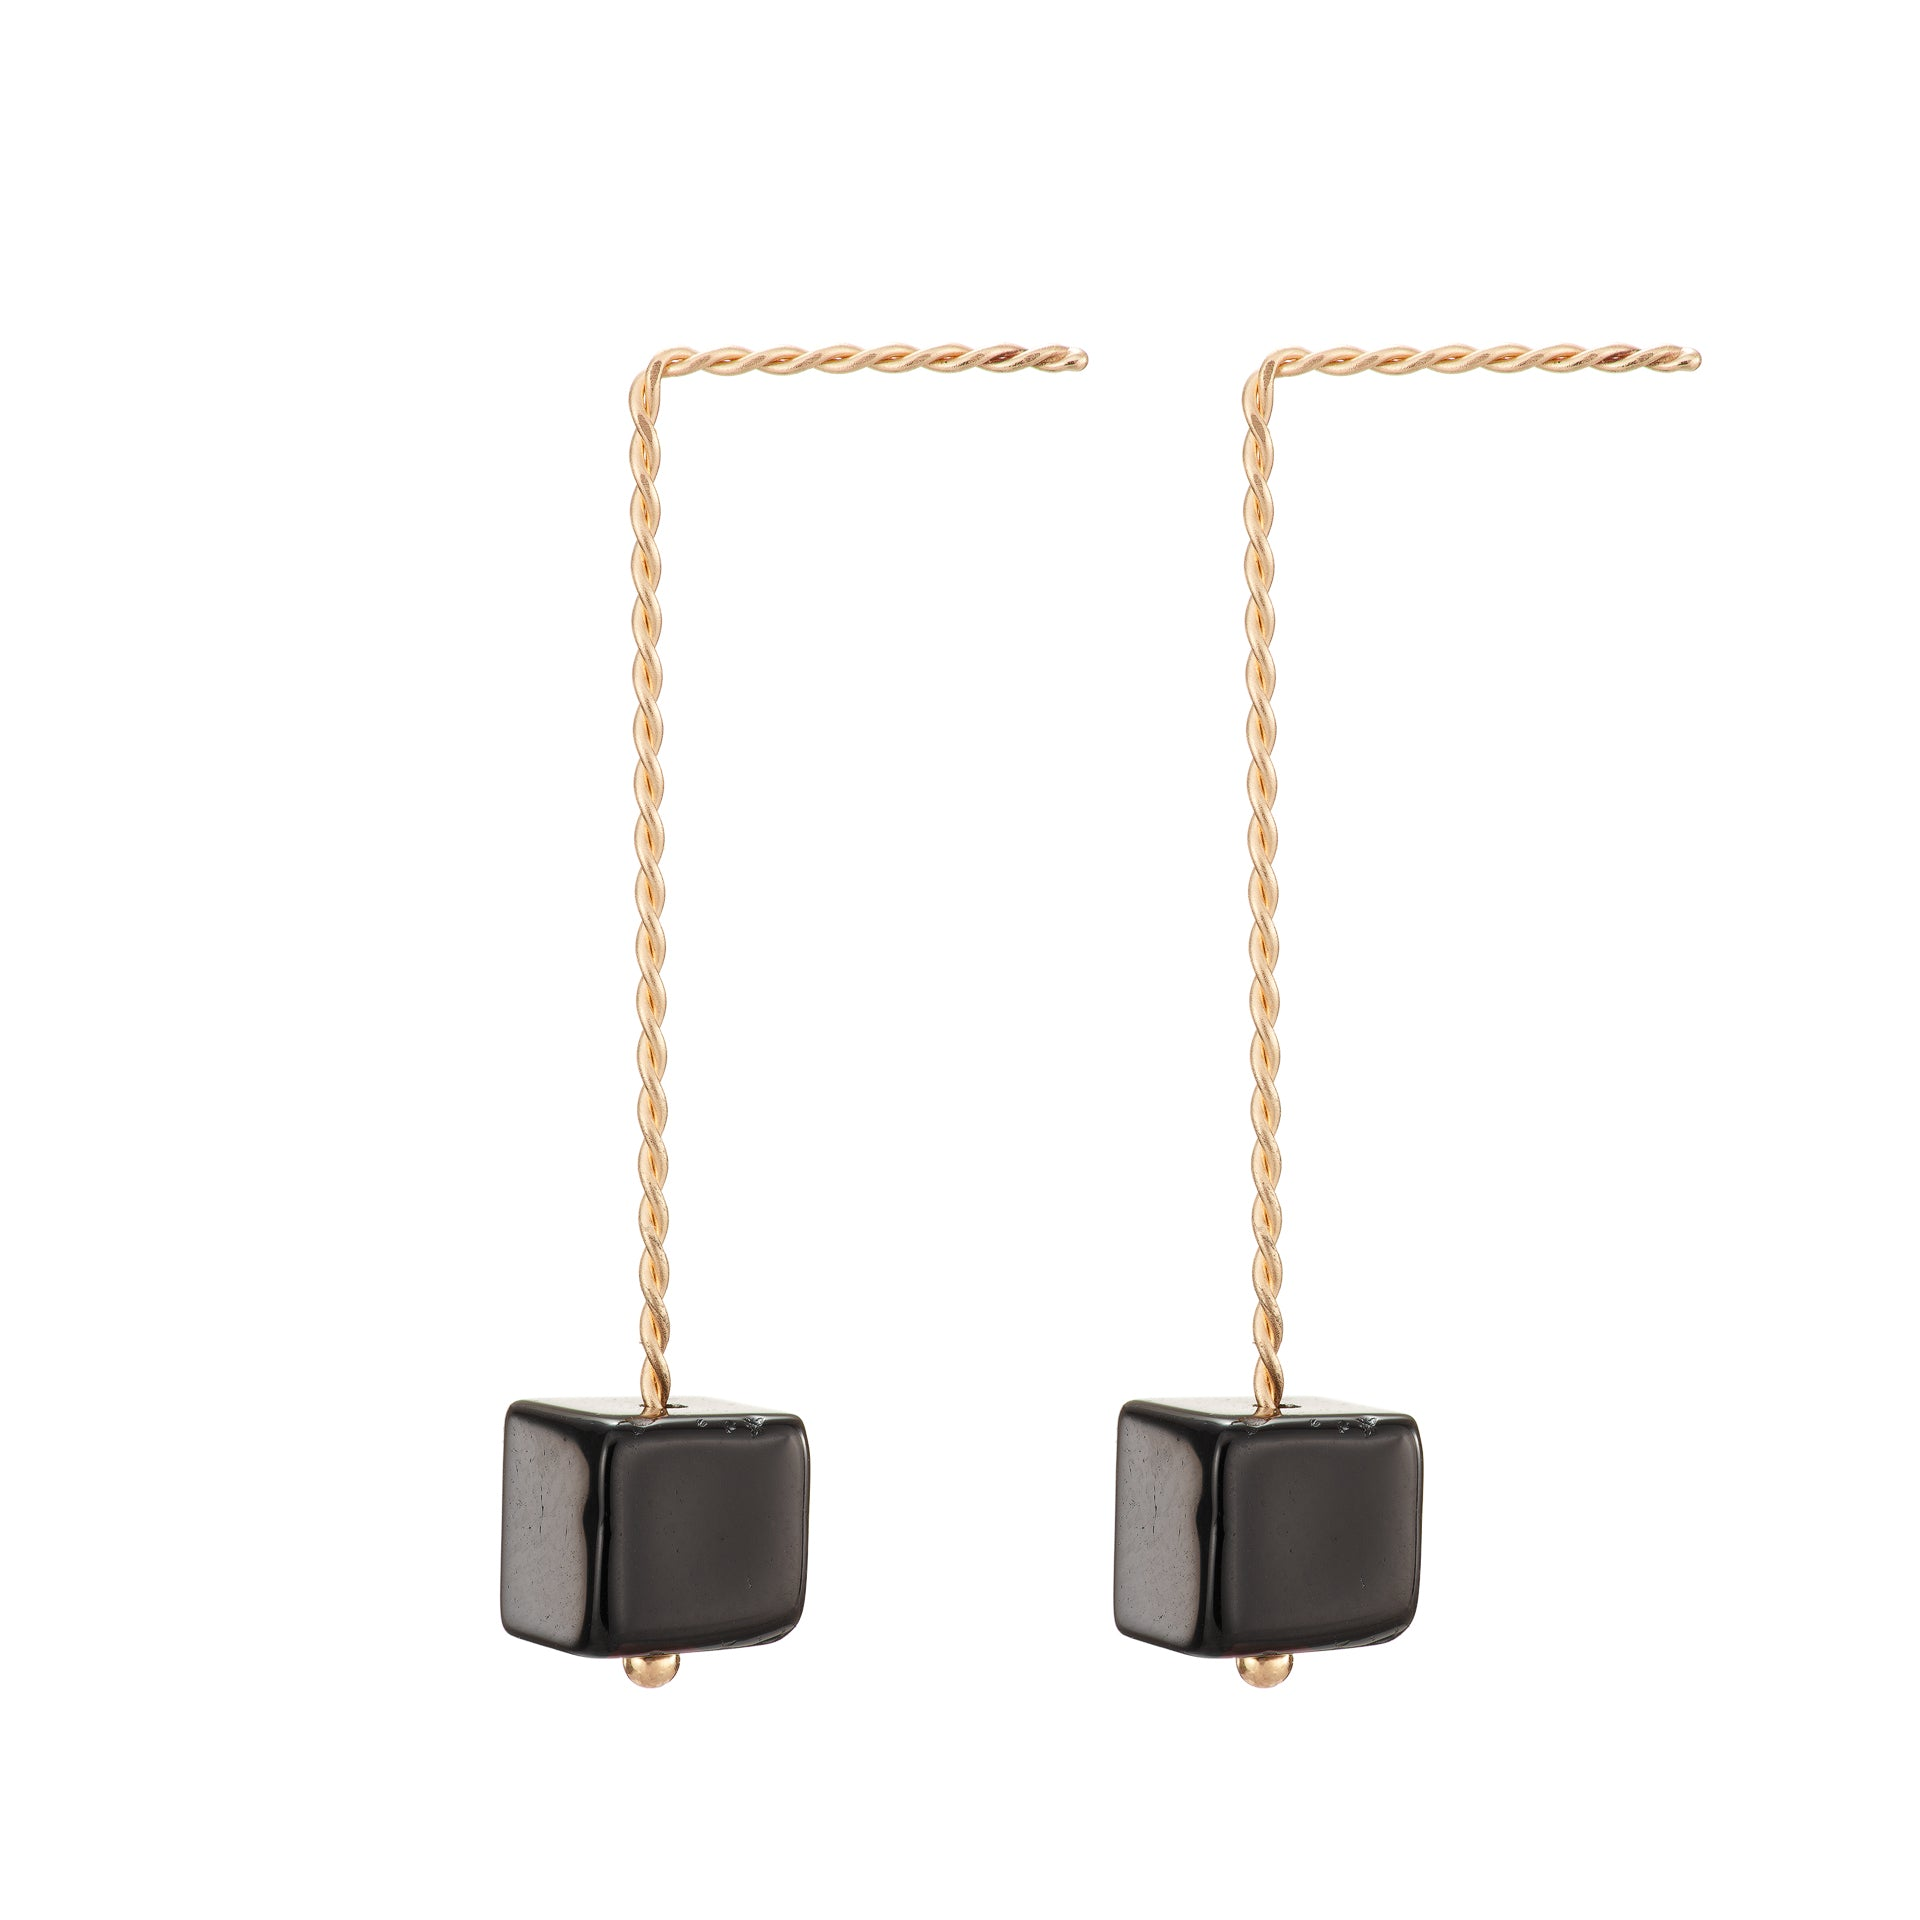 Cubo Long Earrings - Glossy Black Onyx